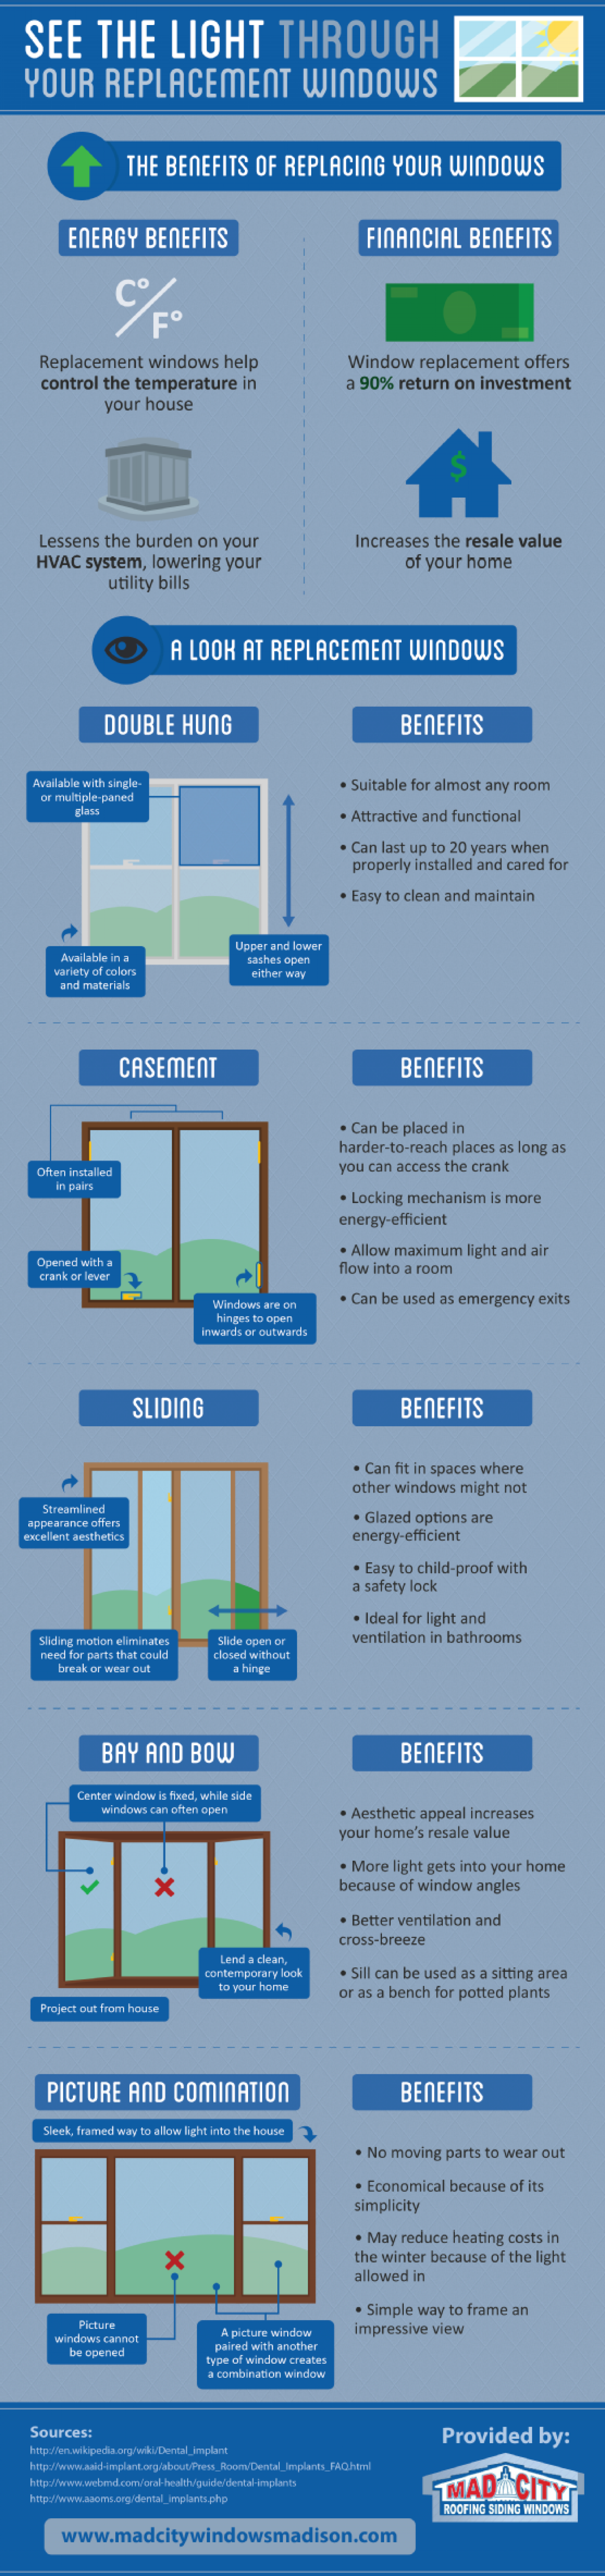 See The Light Through Your Replacement Windows Infographic